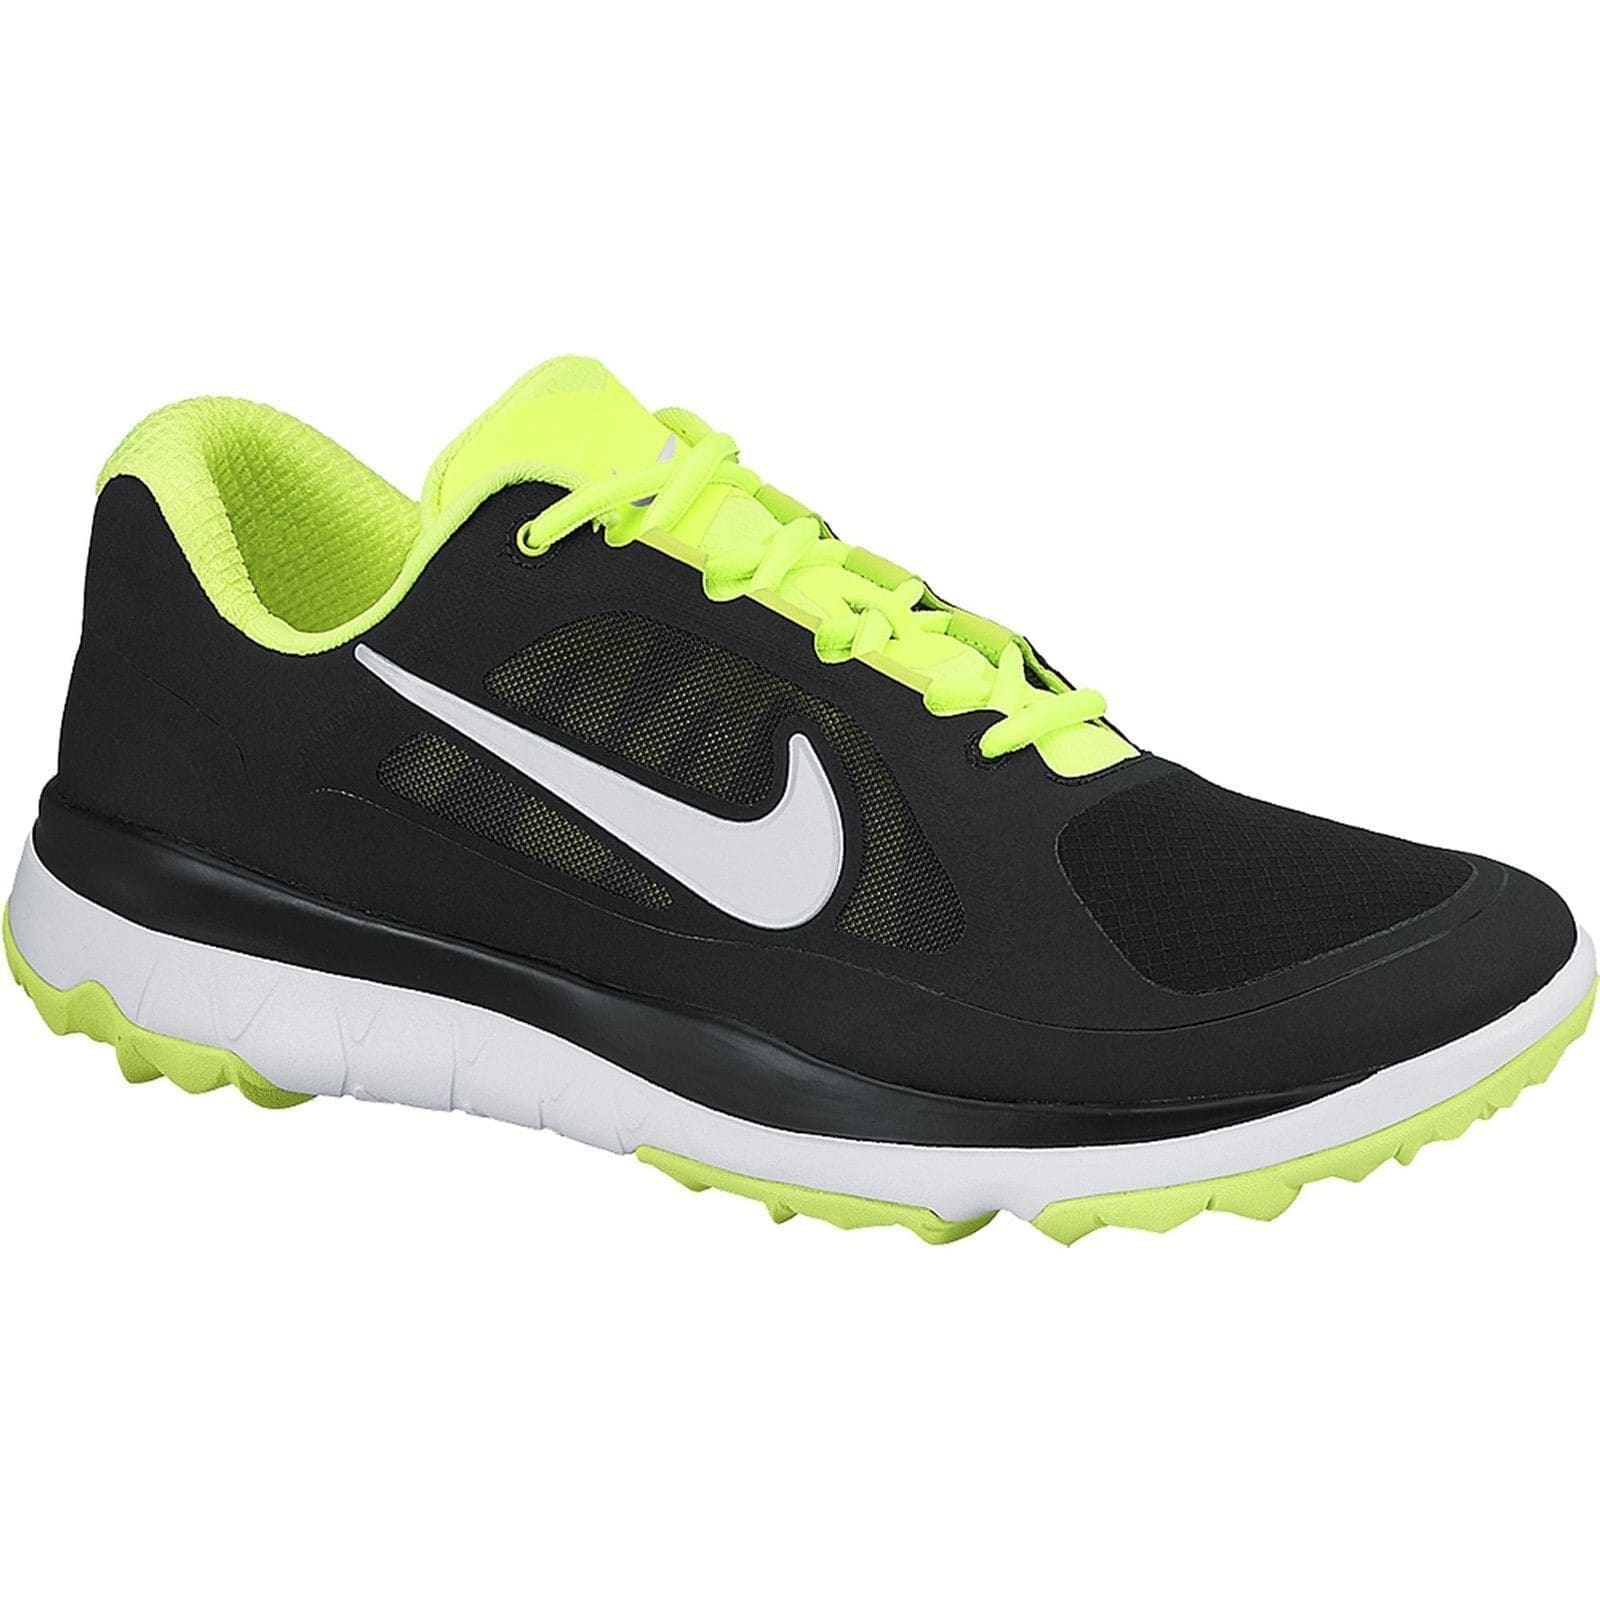 separation shoes 24d3c 831ef Golf Shoes   Find Great Golf Equipment Deals Shopping at Overstock